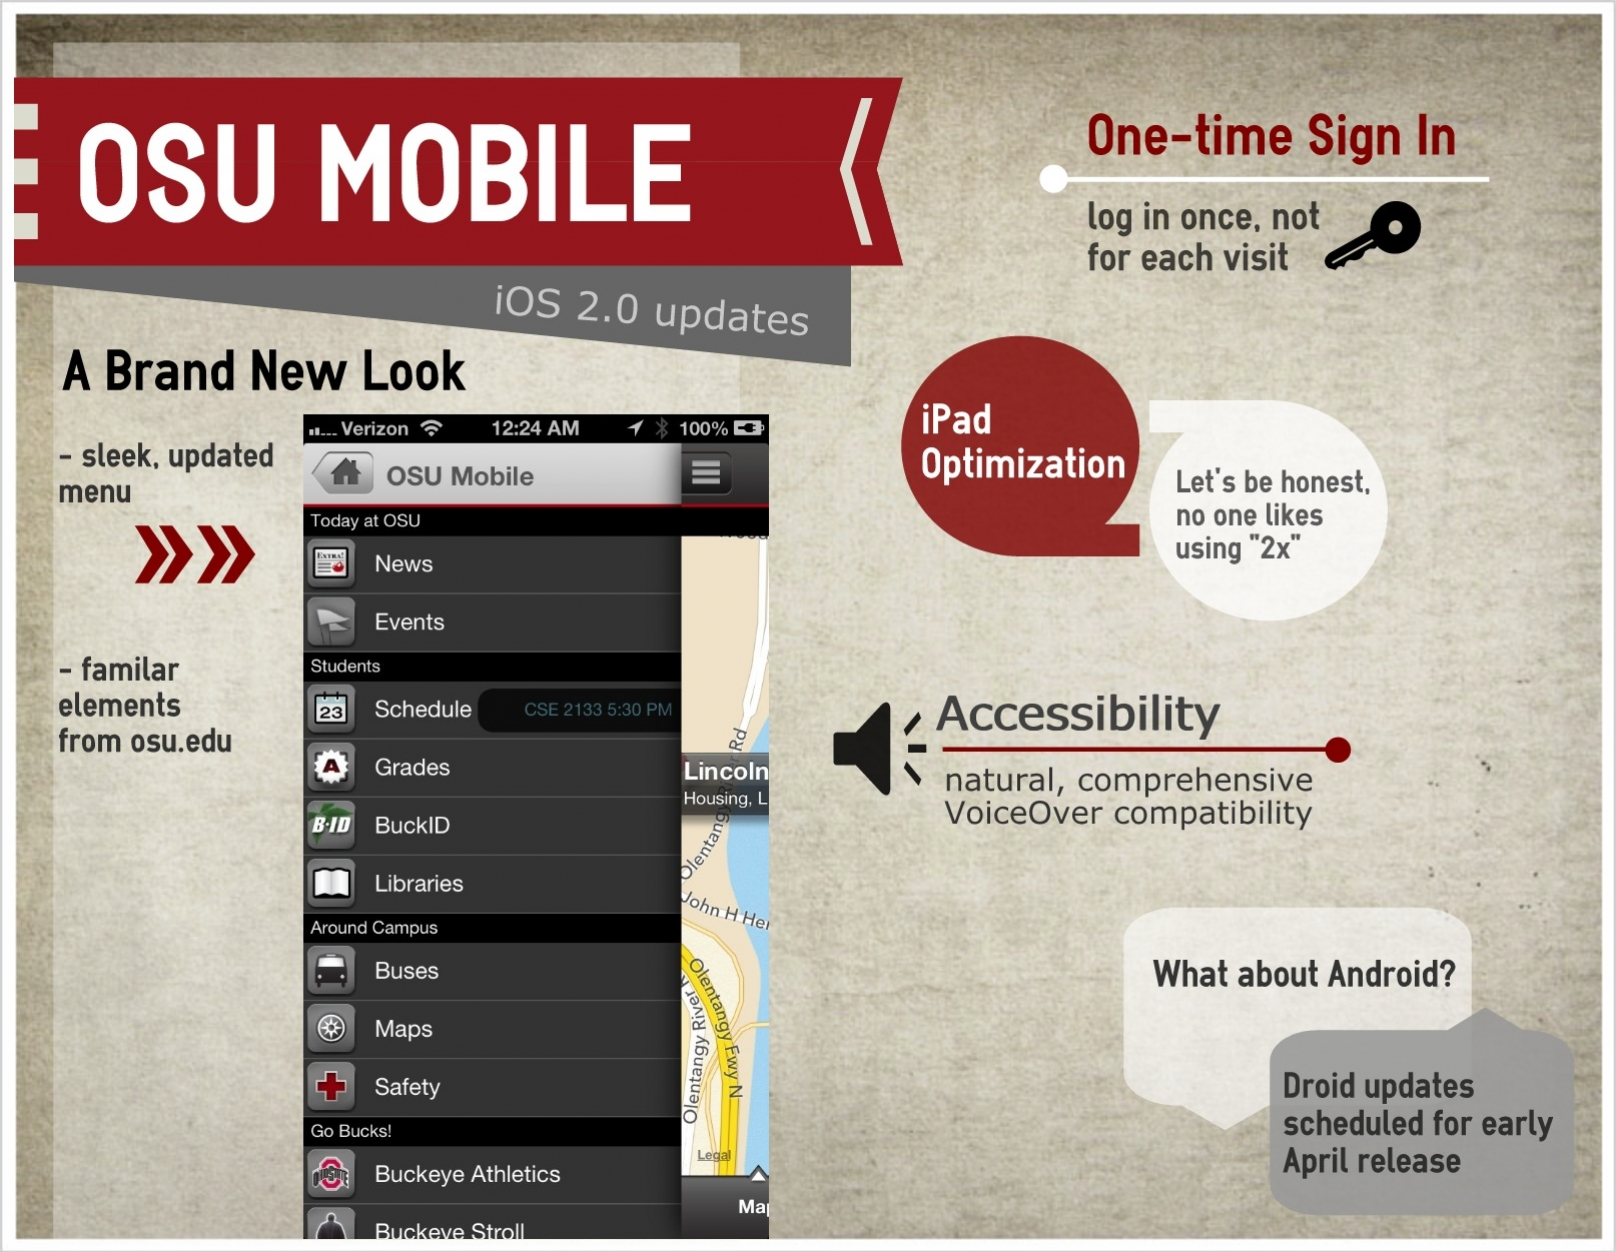 OSU Mobile features